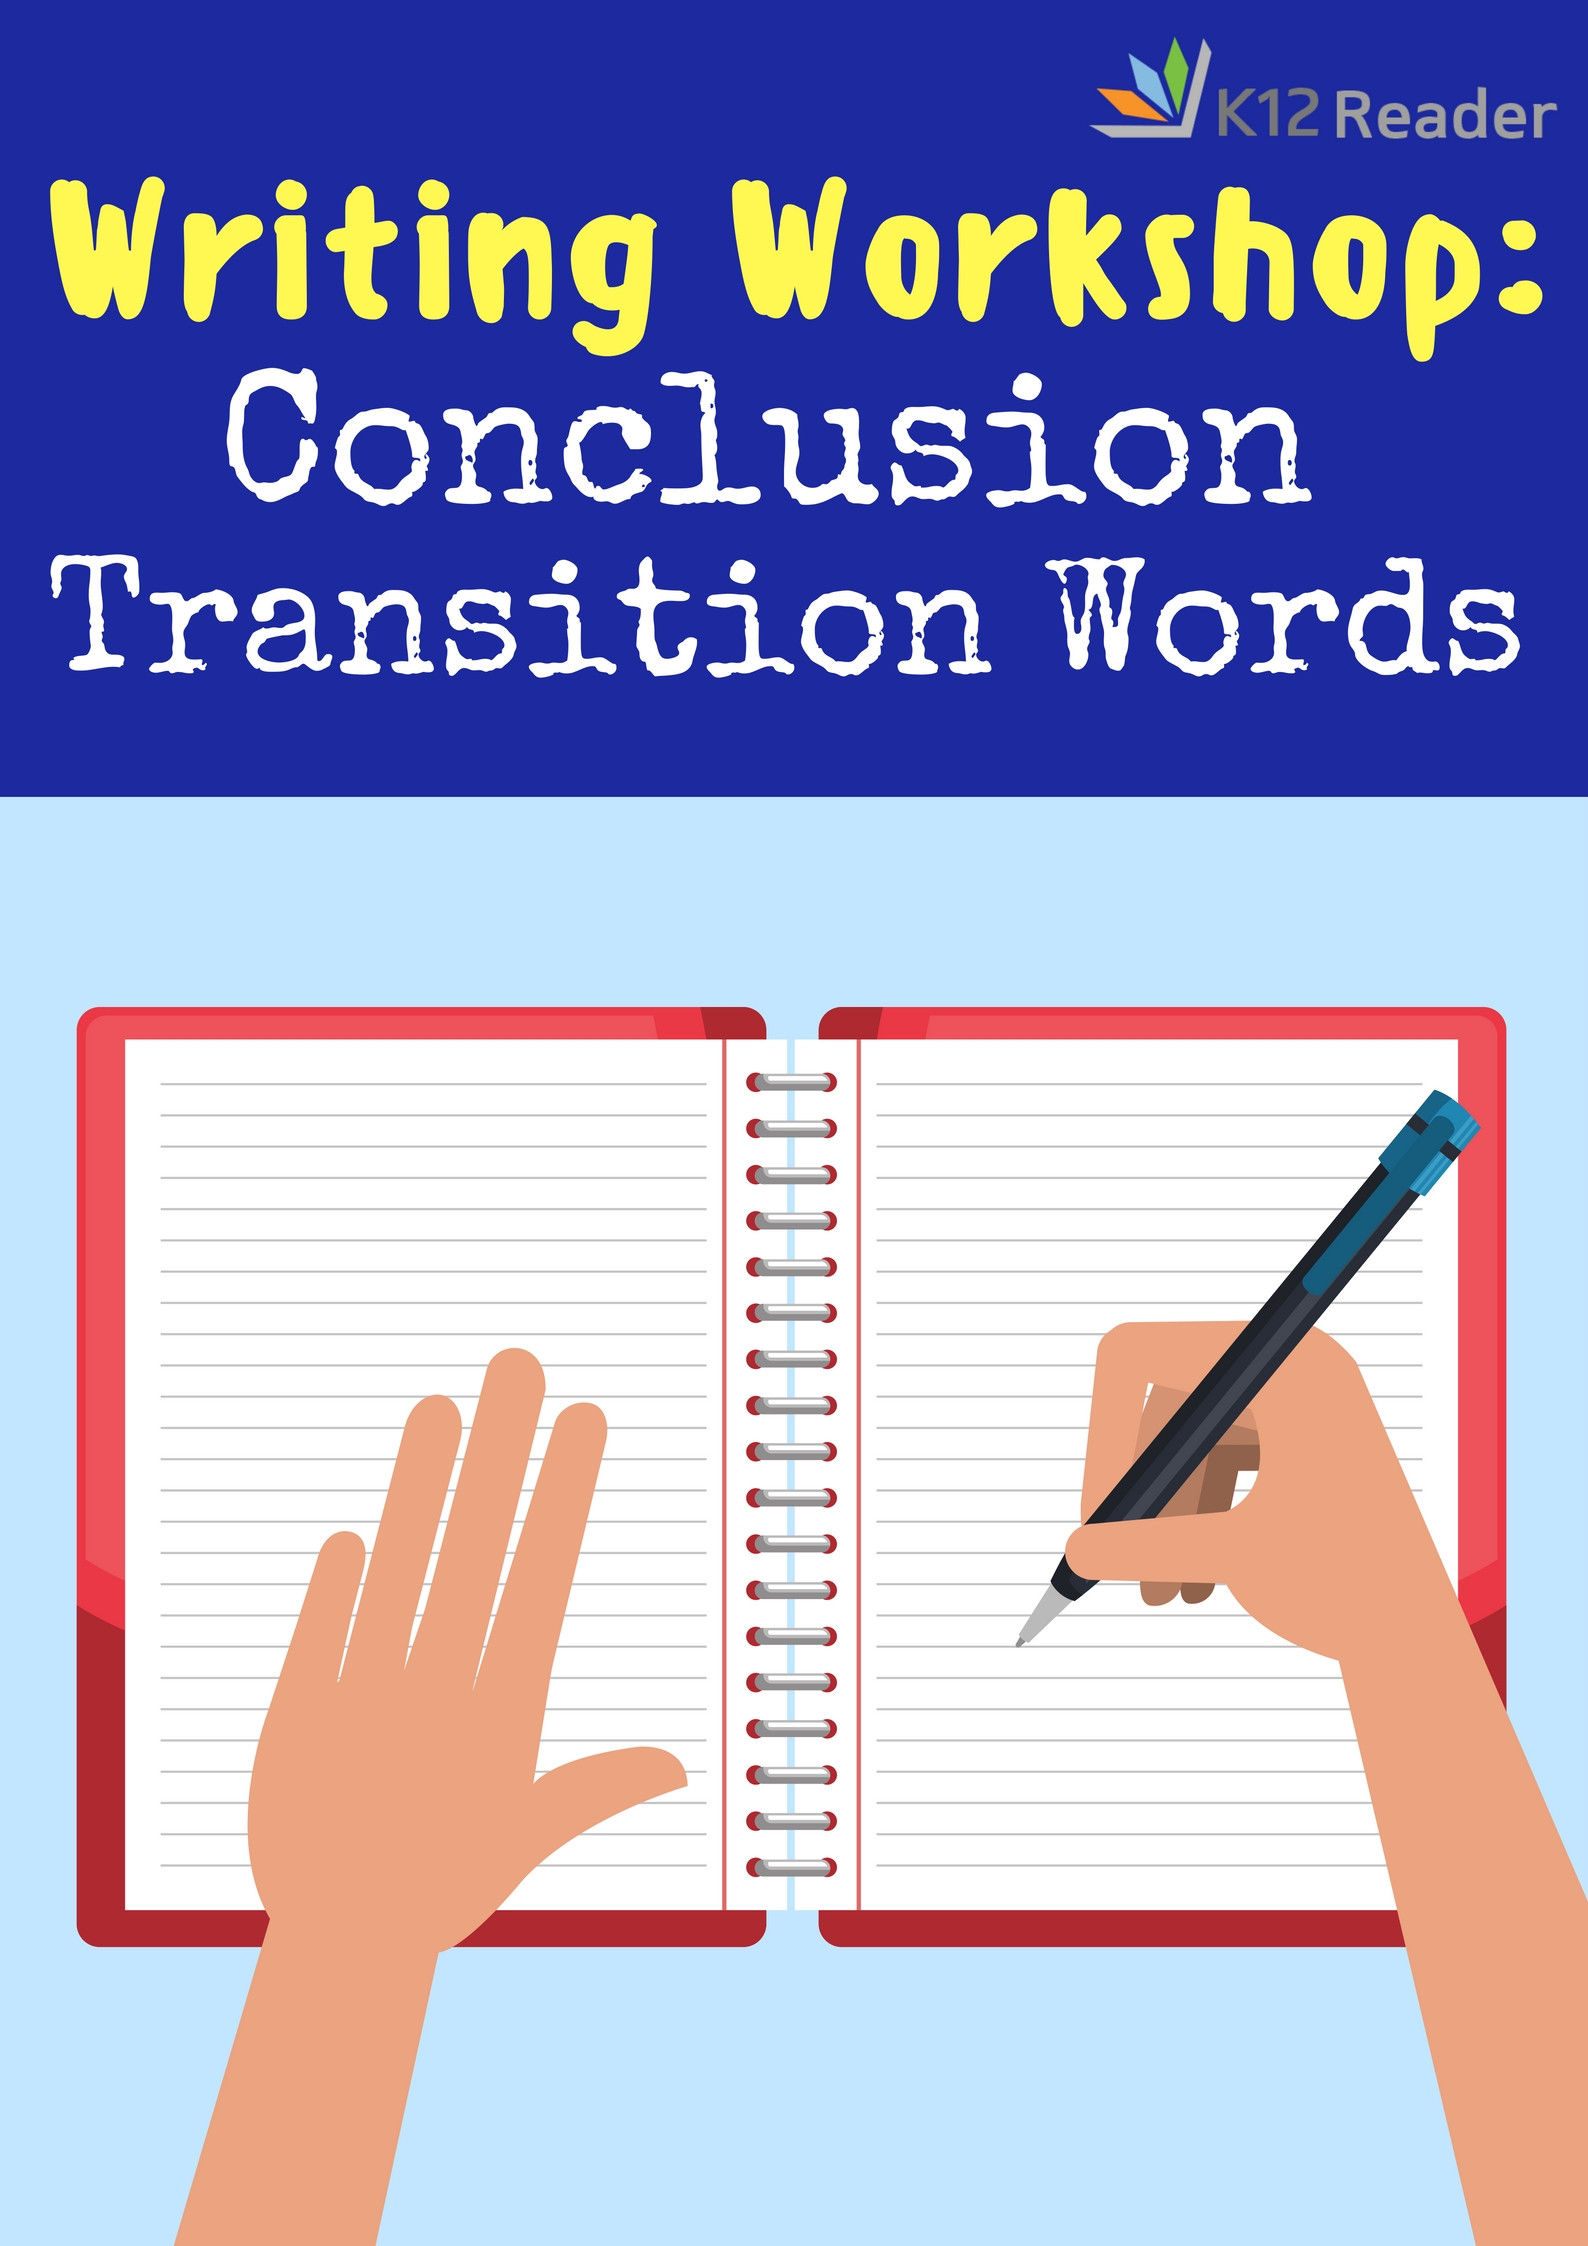 Transition Words Worksheets 4th Grade Conclusion Transition Words and Phrases K12reader